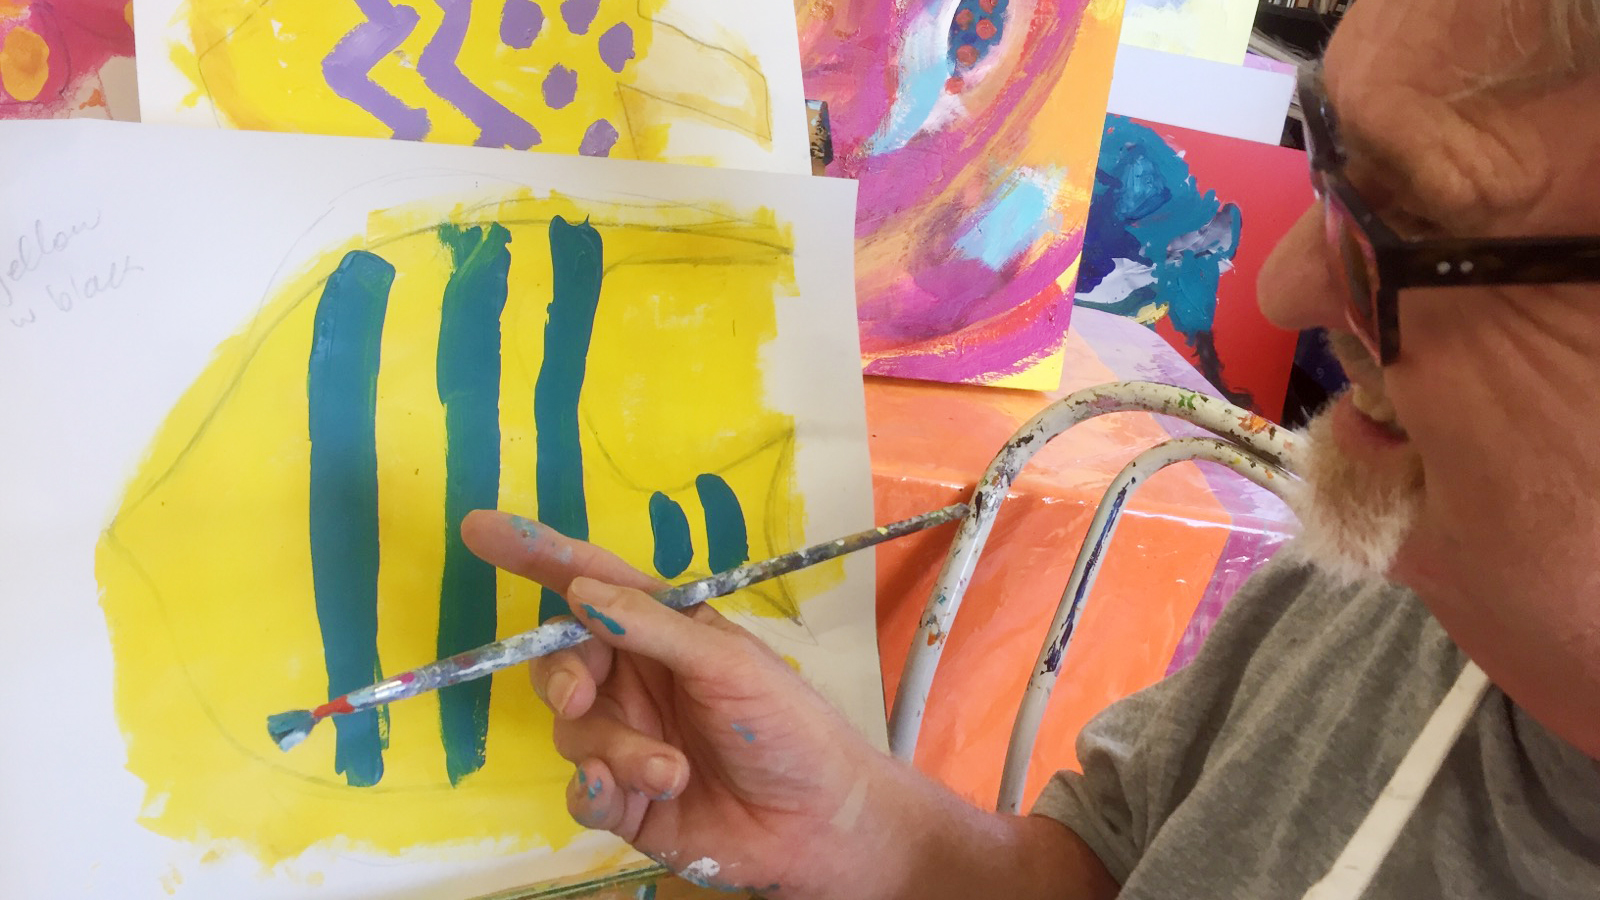 A man with a paint brush in his hand points at a painting of a yellow fish with blue stripes.